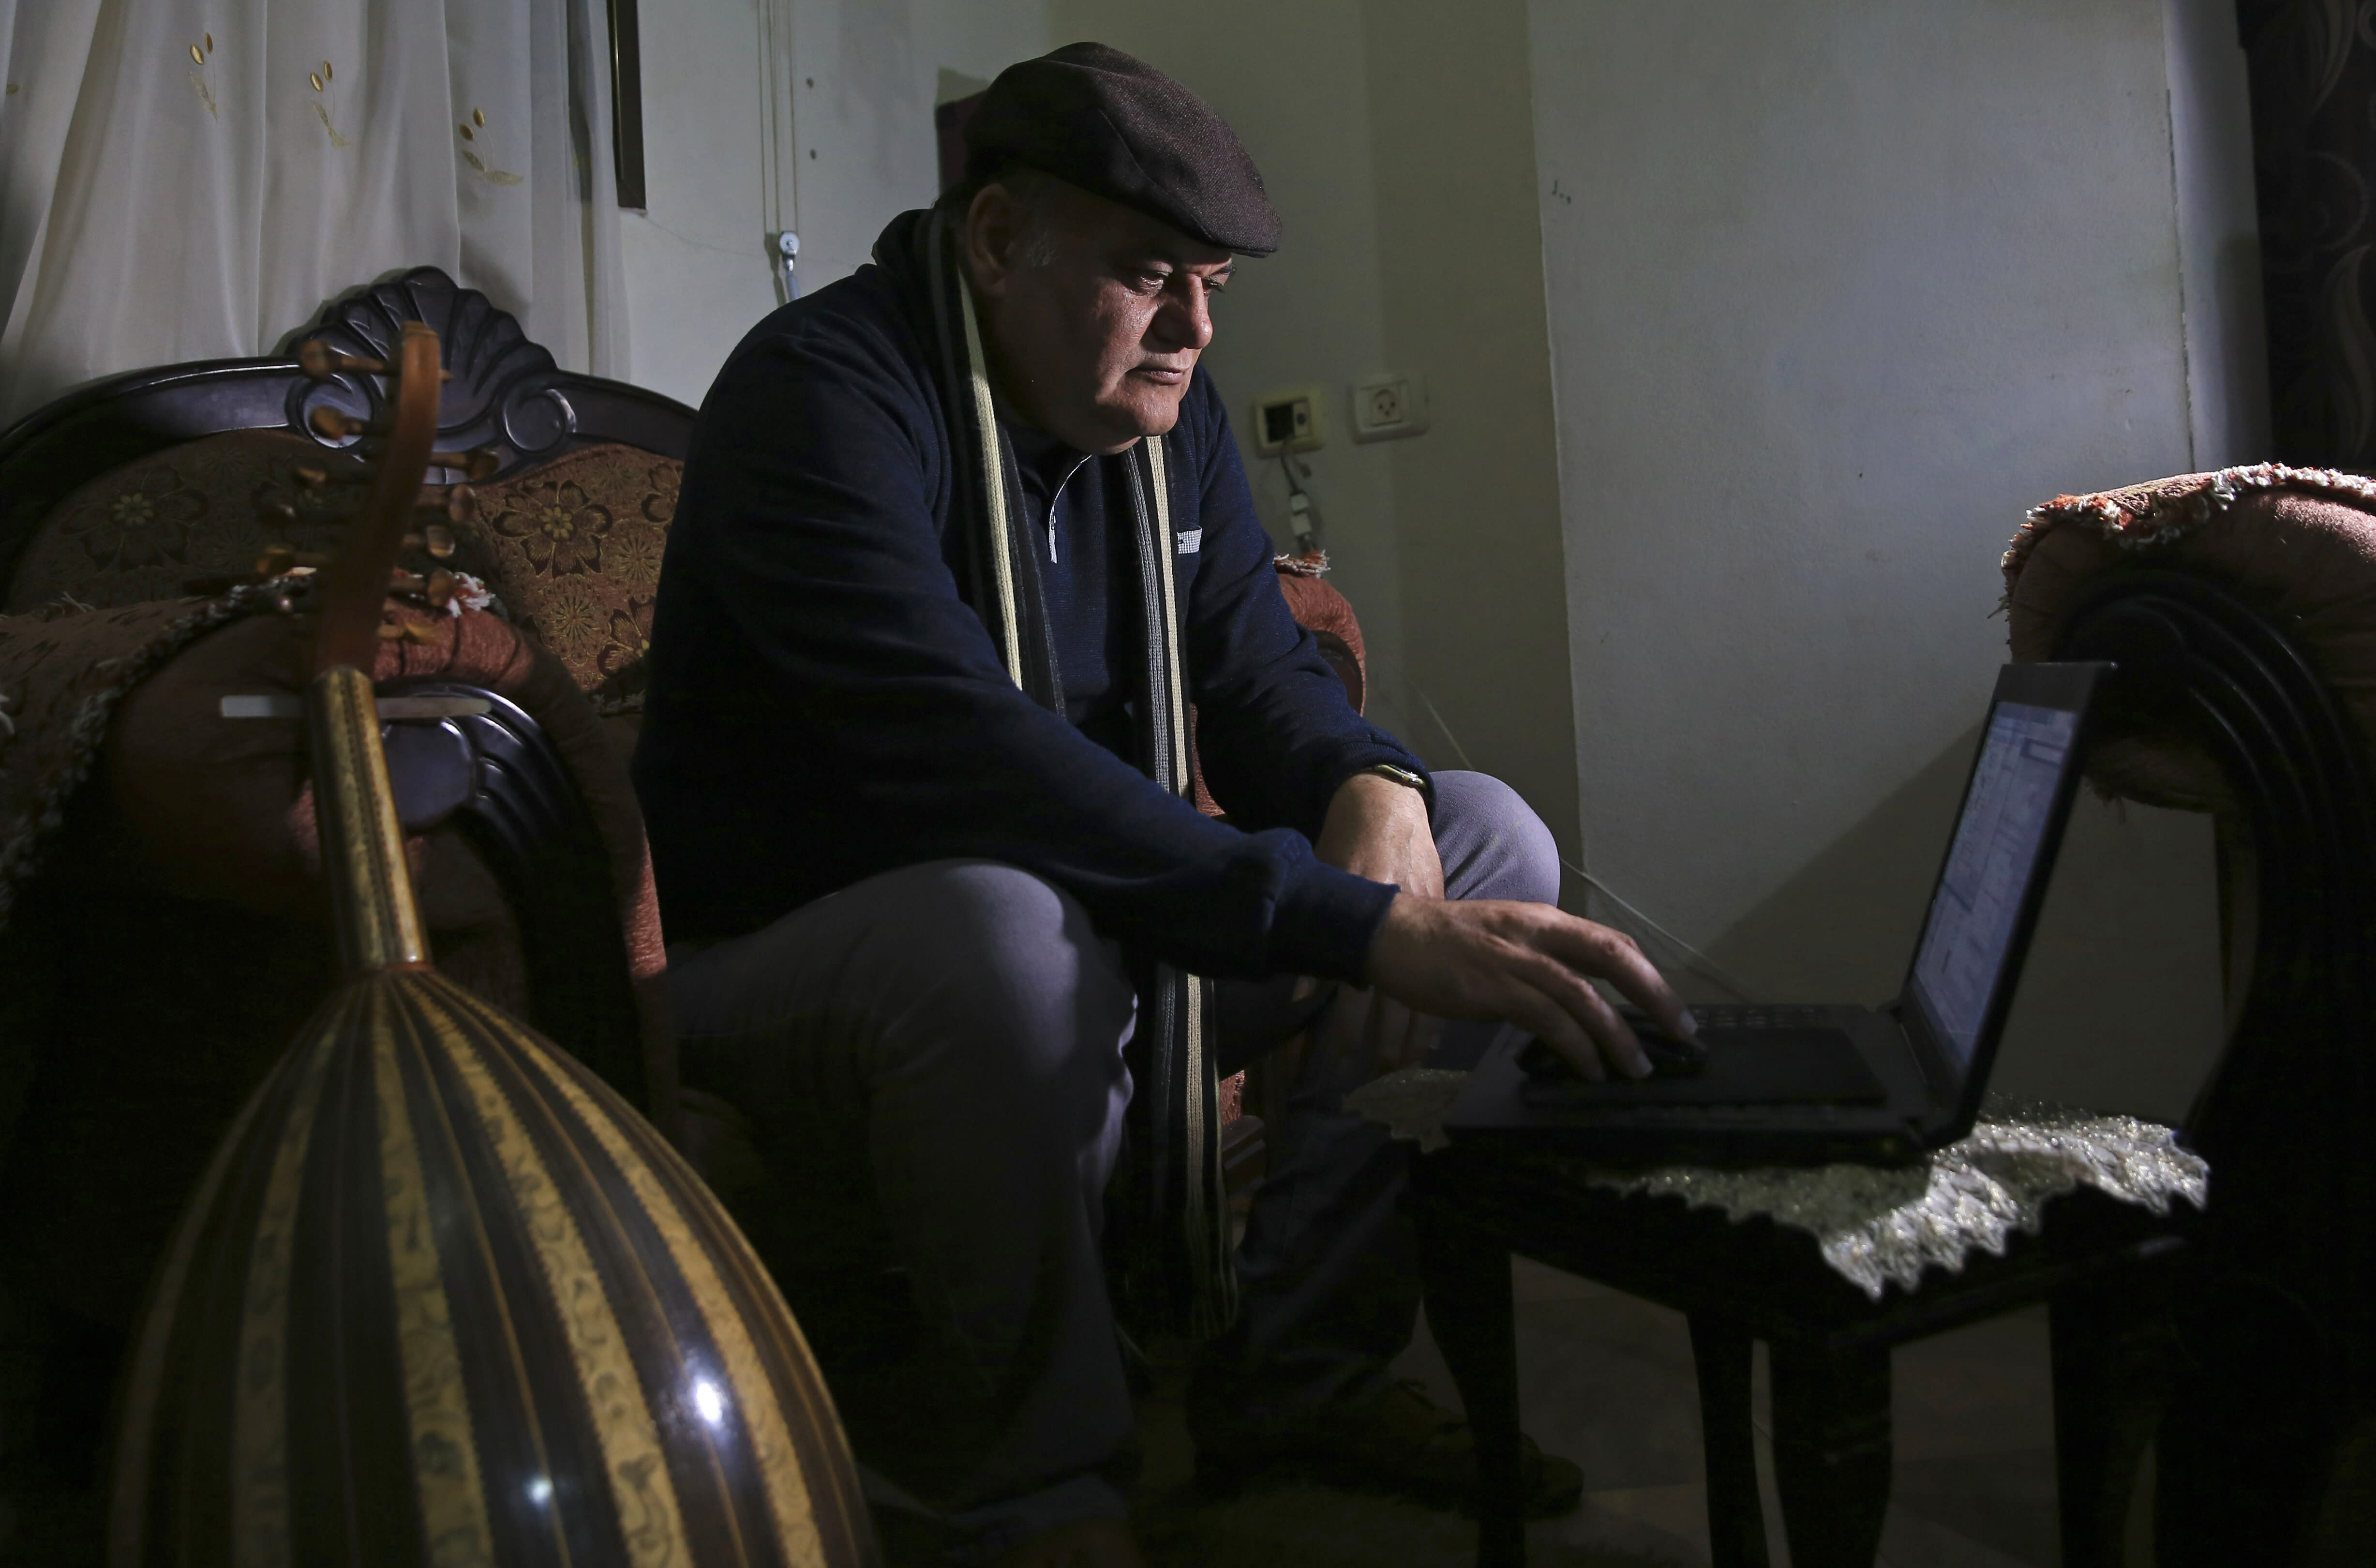 """In this Tuesday, Jan. 29, 2019 photo, Palestinian actor and playwright Ali Abu Yaseen, checks his laptop during an interview in his home at the Shati refugee camp in Gaza City. A new documentary called """"Gaza"""" is hitting the screens at the prestigious Sundance Film Festival this week, providing a colorful glimpse of life in the blockaded Hamas-ruled territory. But one of its main subjects, Abu Yaseen, won't be attending the gathering due to the very circumstances depicted in the film. (AP Photo/Adel Hana)"""